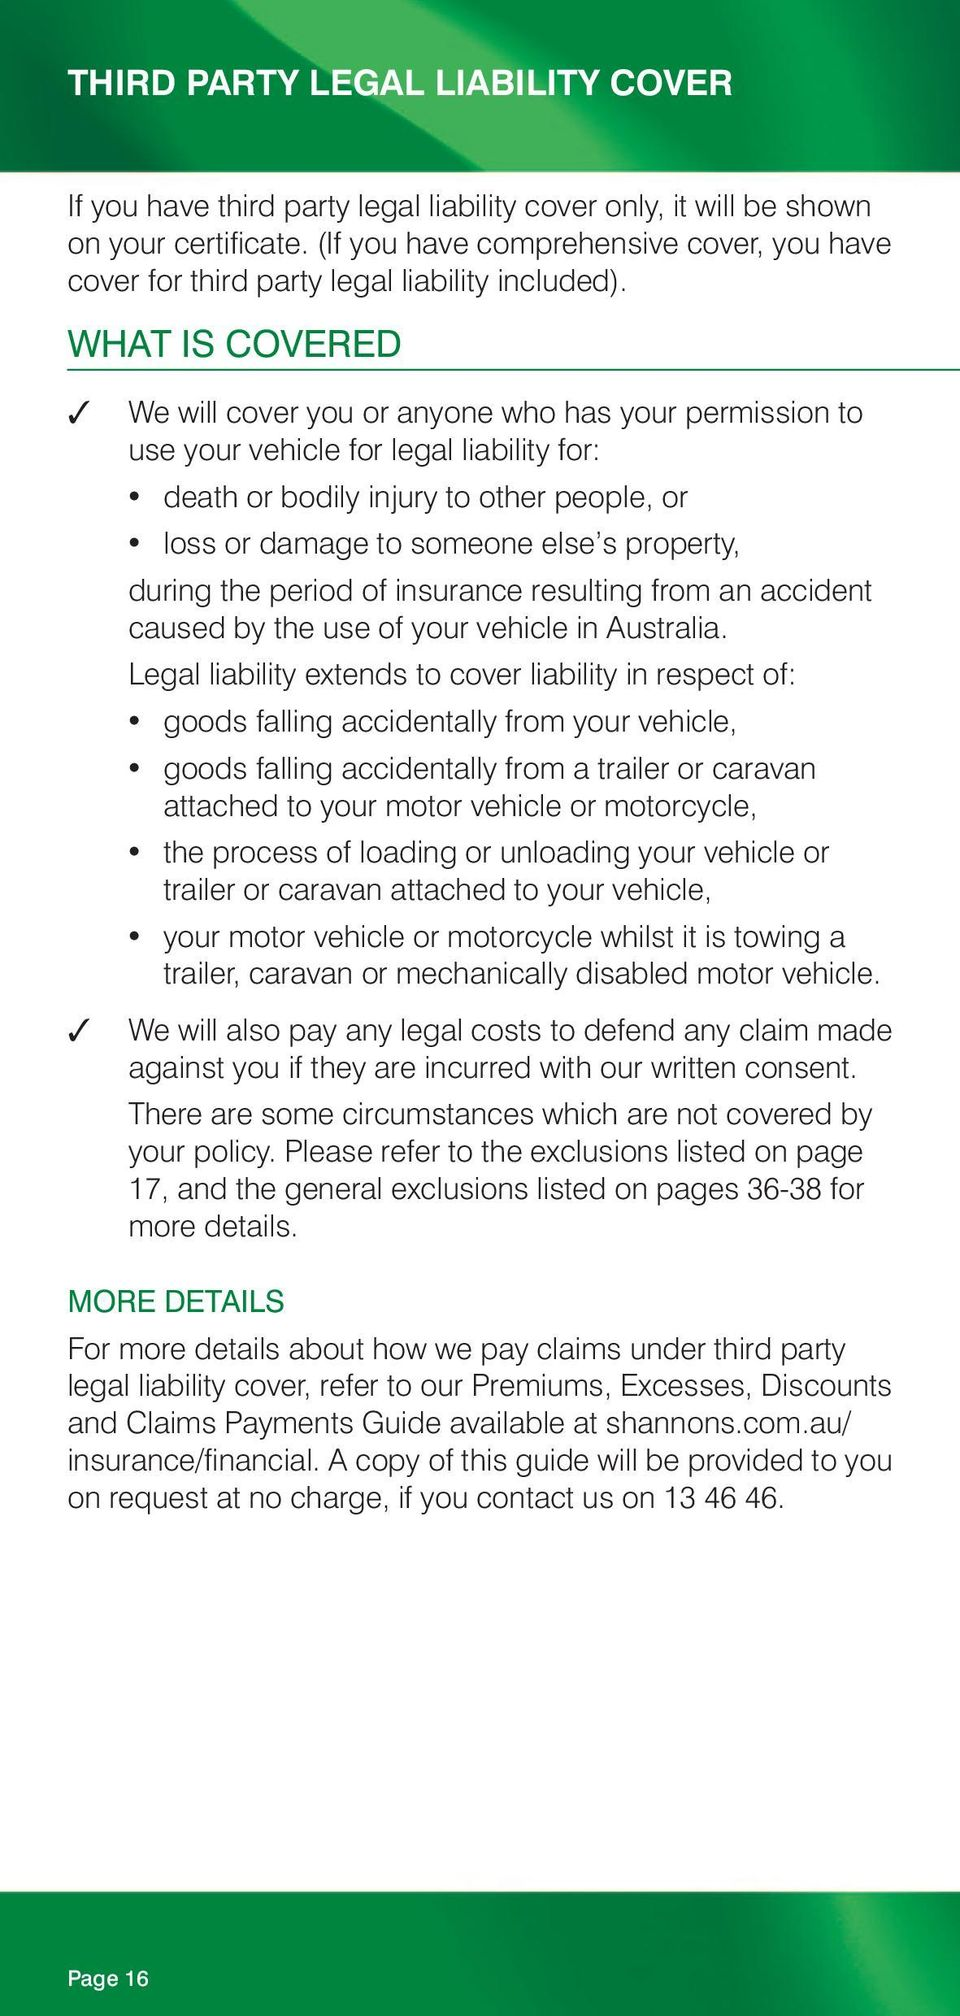 WHAT IS COVERED We will cover you or anyone who has your permission to use your vehicle for legal liability for: death or bodily injury to other people, or loss or damage to someone else s property,